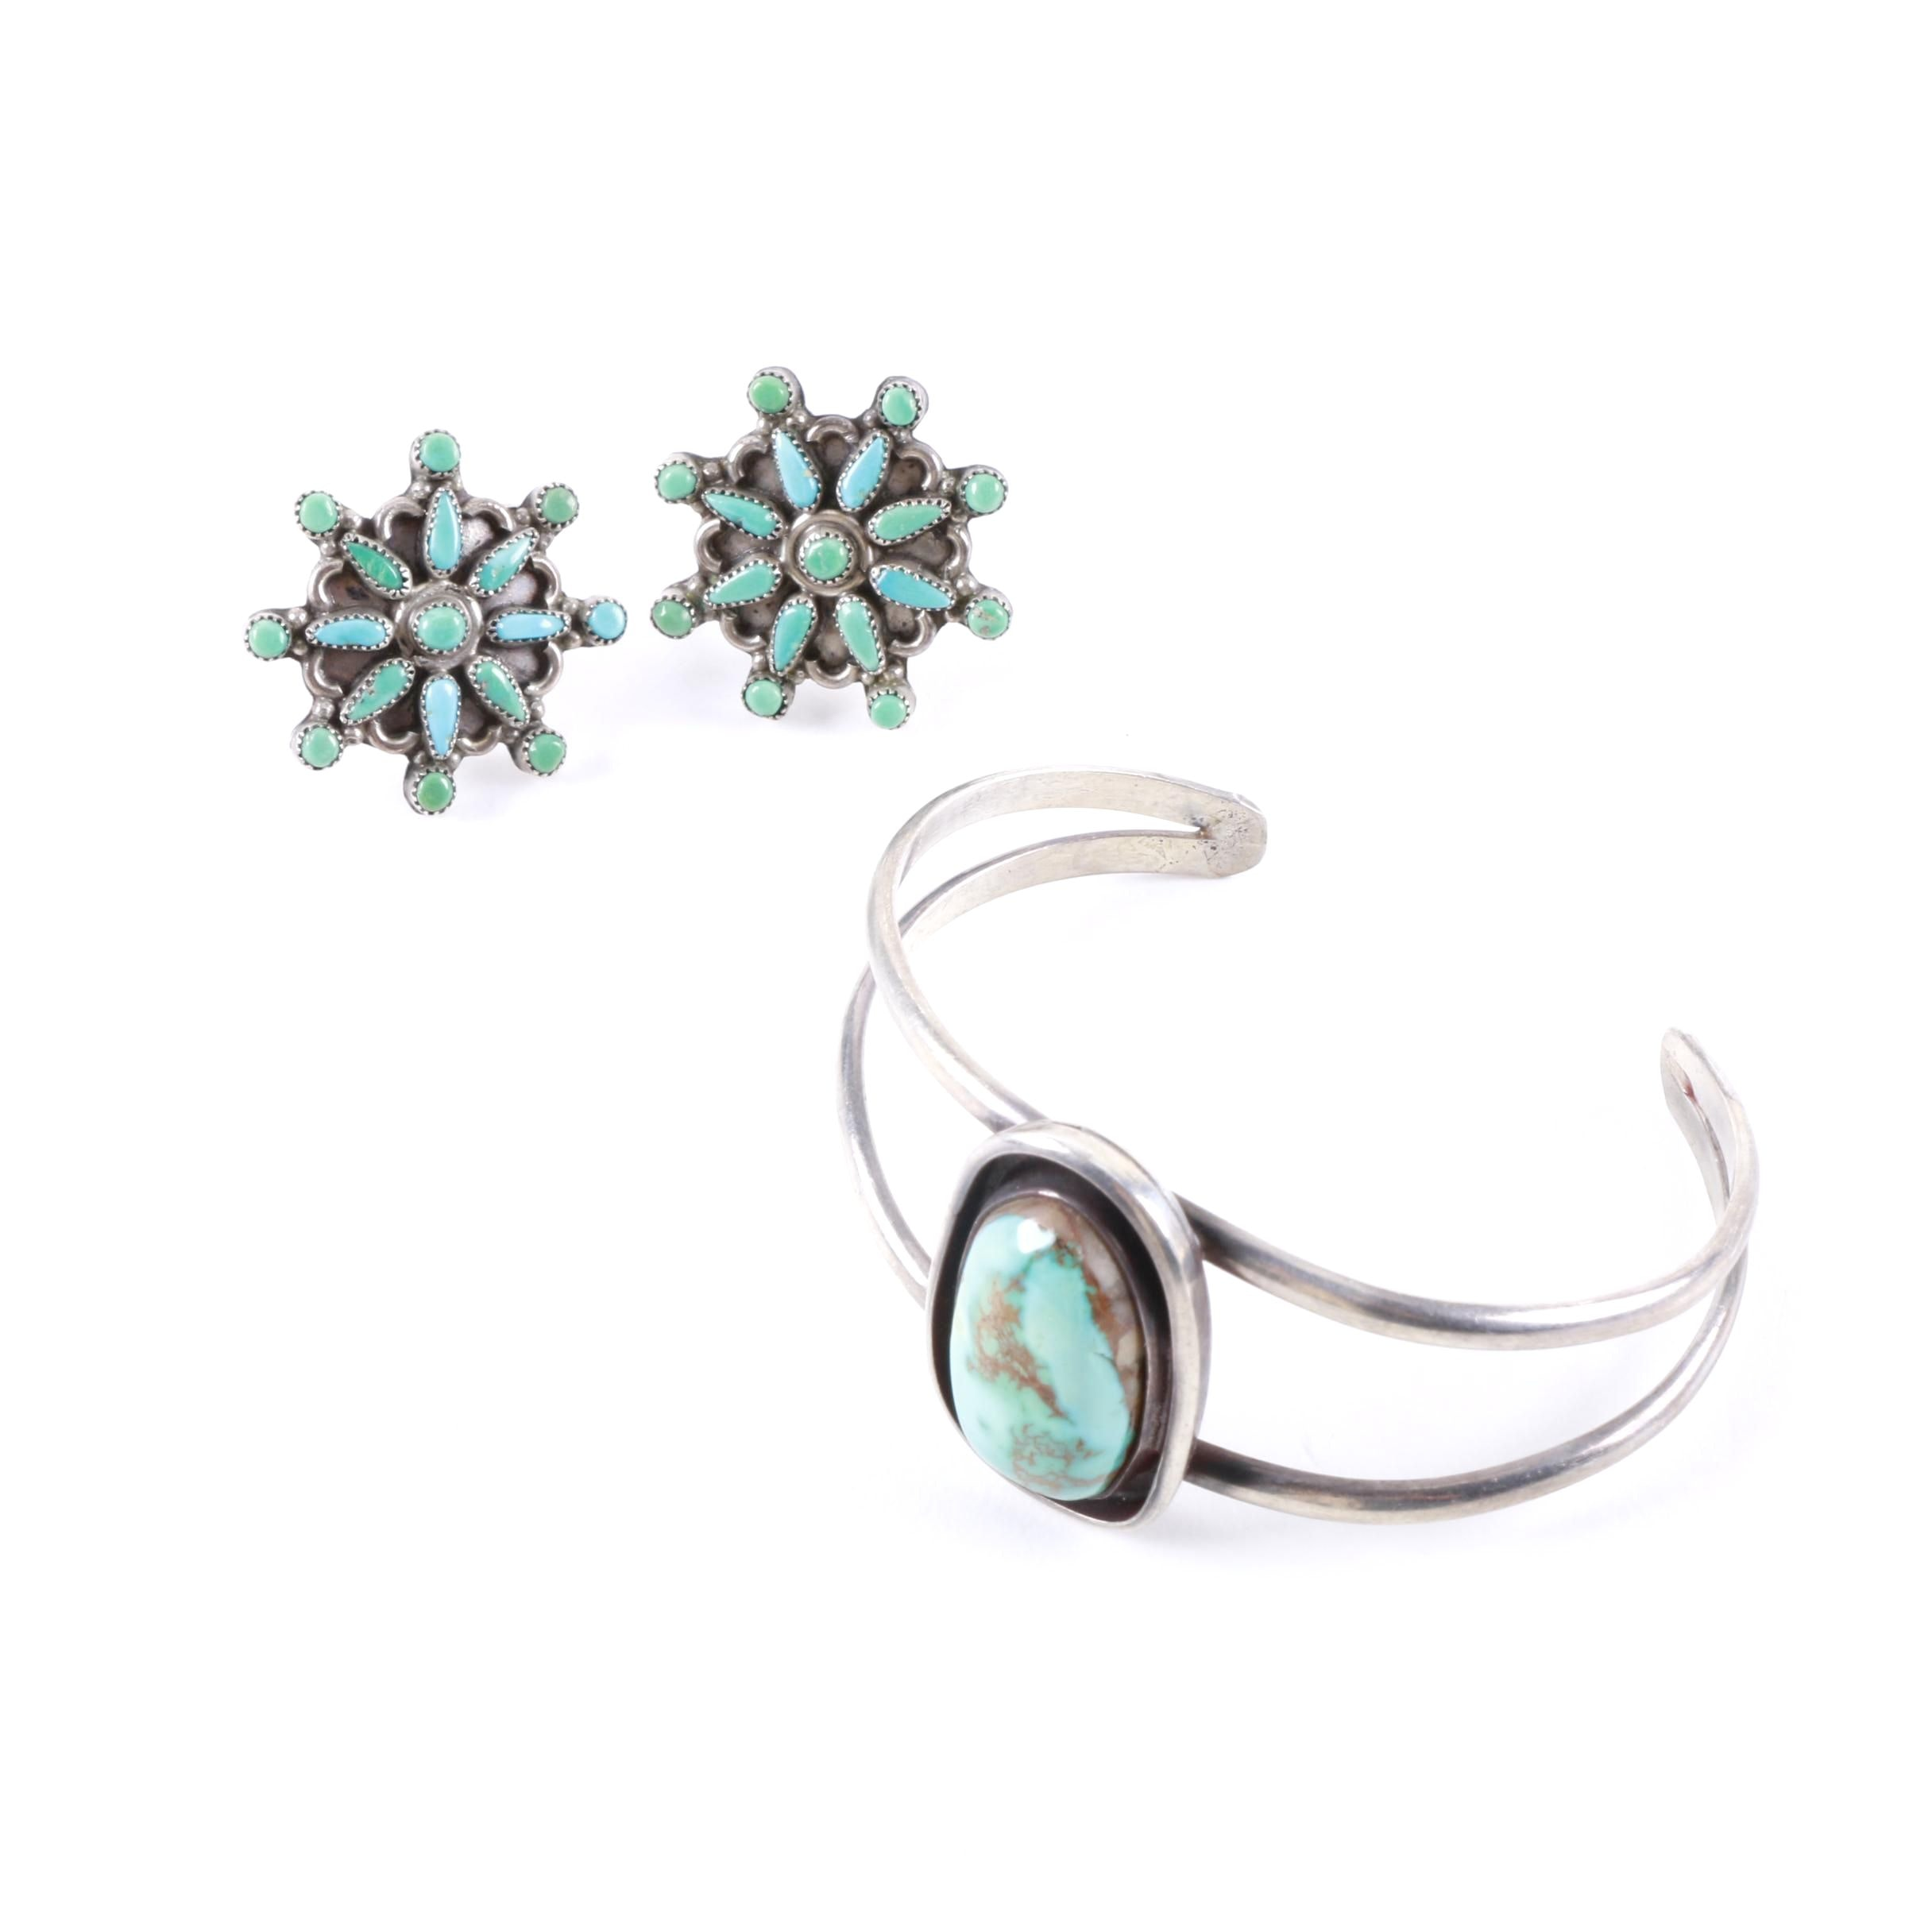 Southwest Style Sterling Silver and Turquoise Bracelet and Earrings